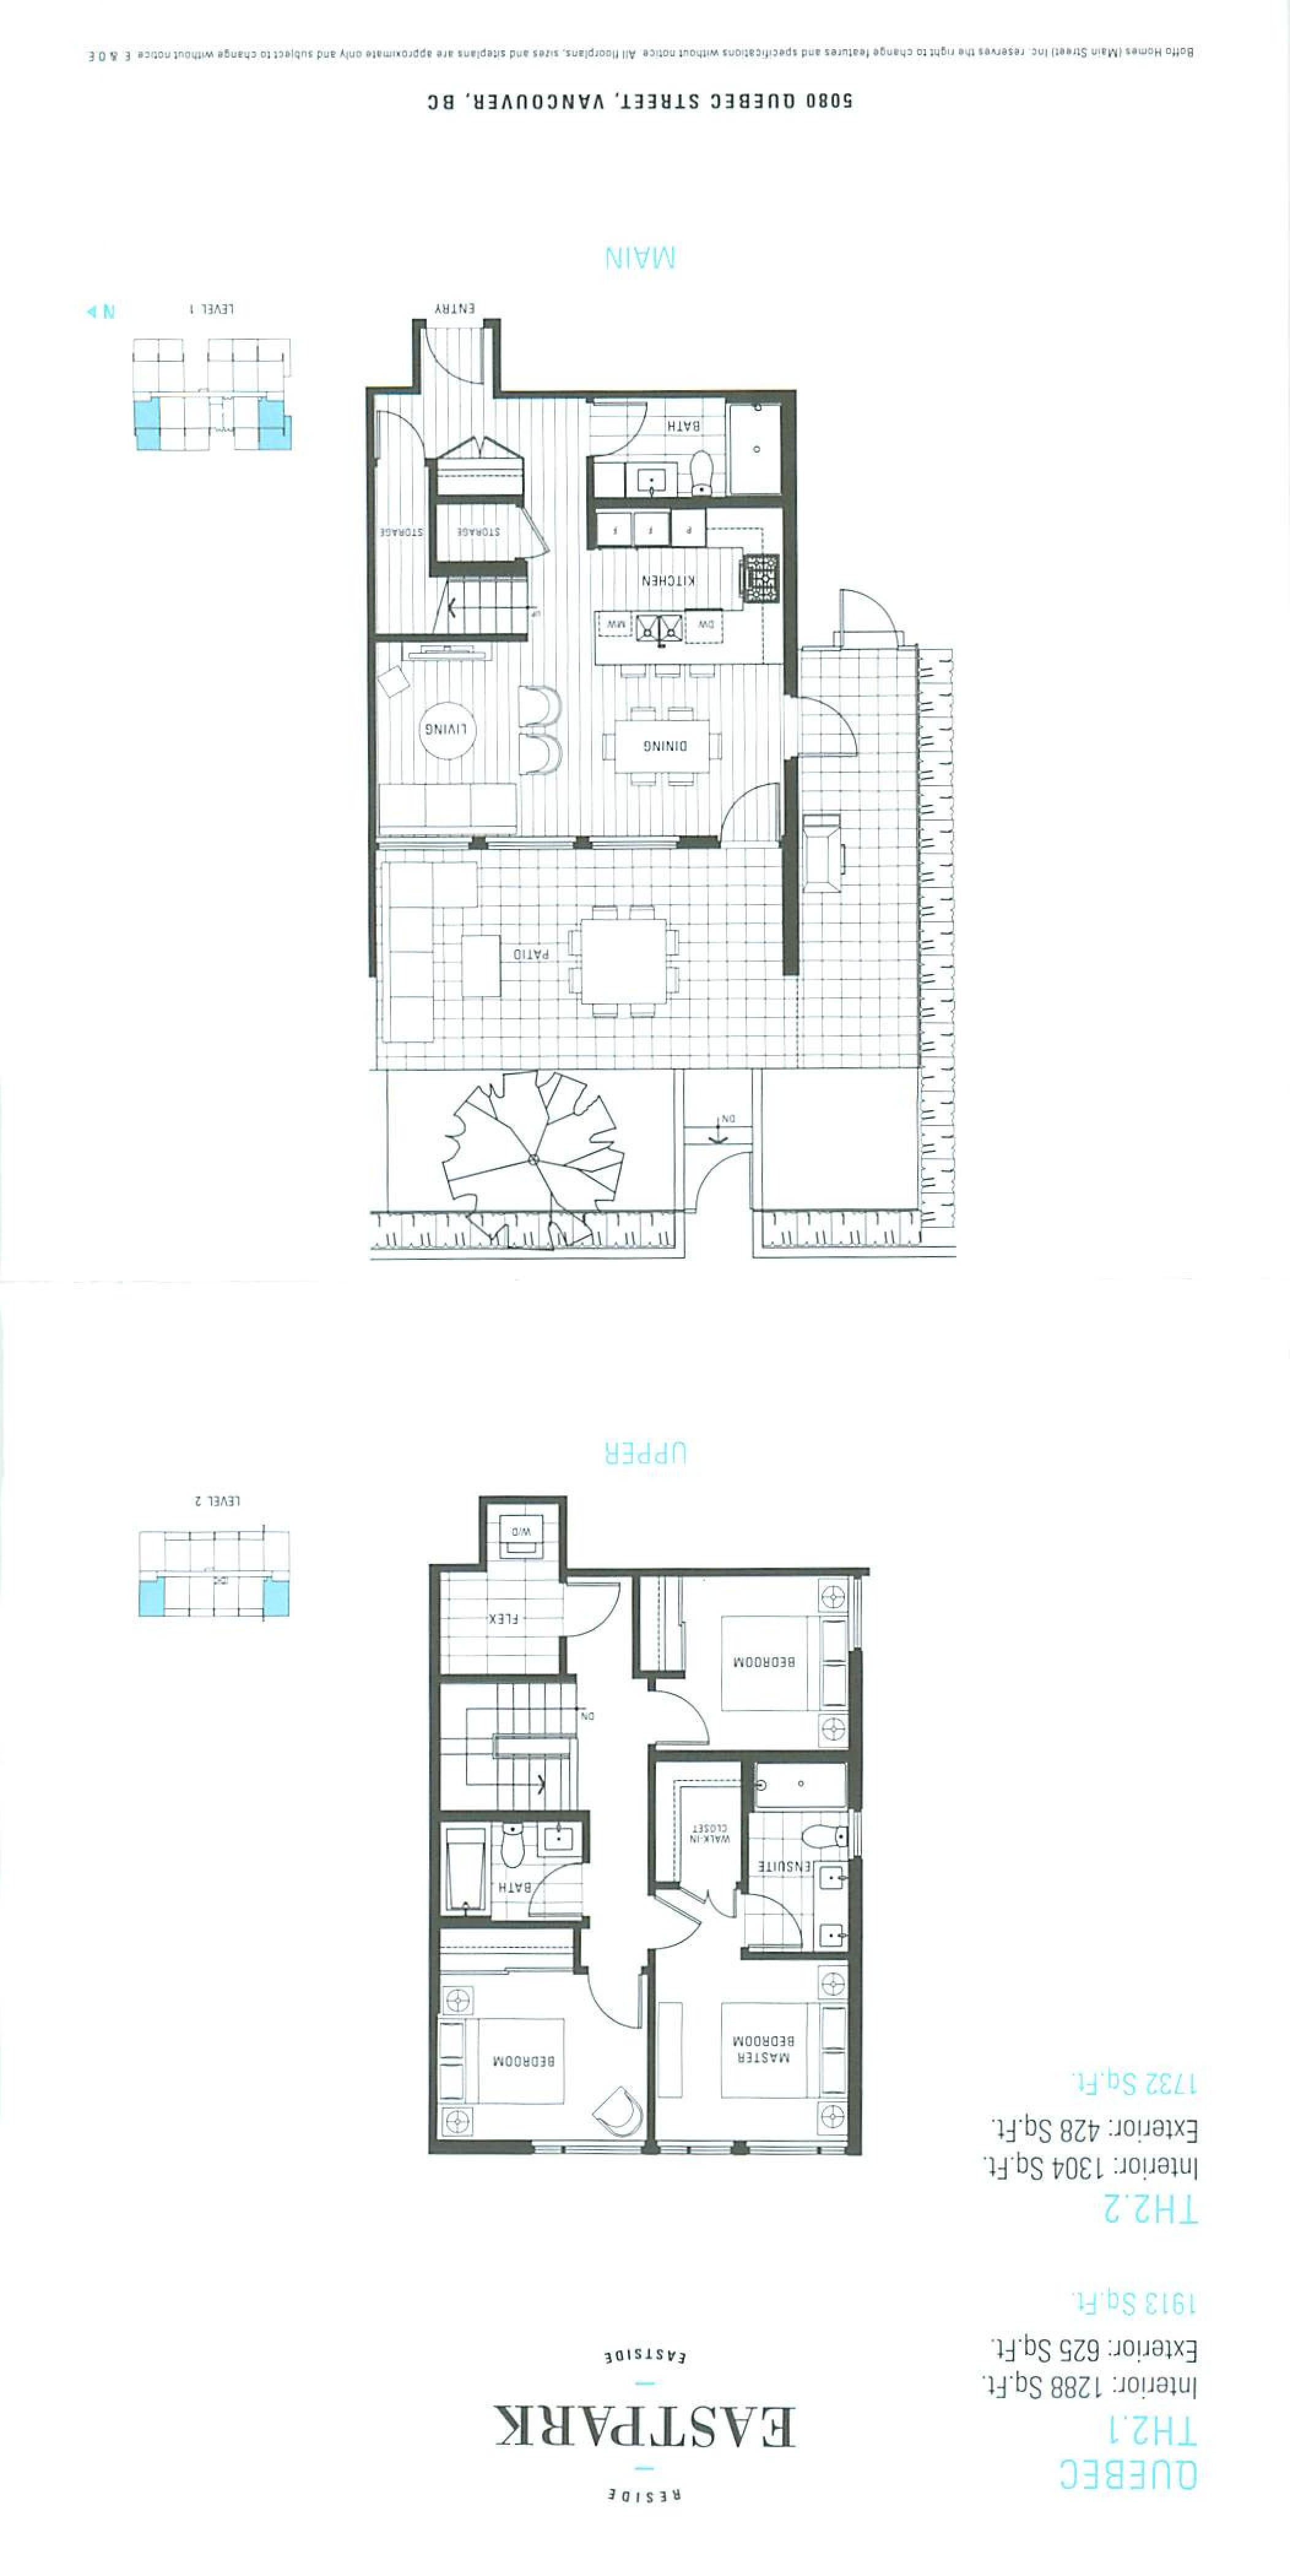 EastPark Quebec Larger Floor Plans Mike Stewart-page-008